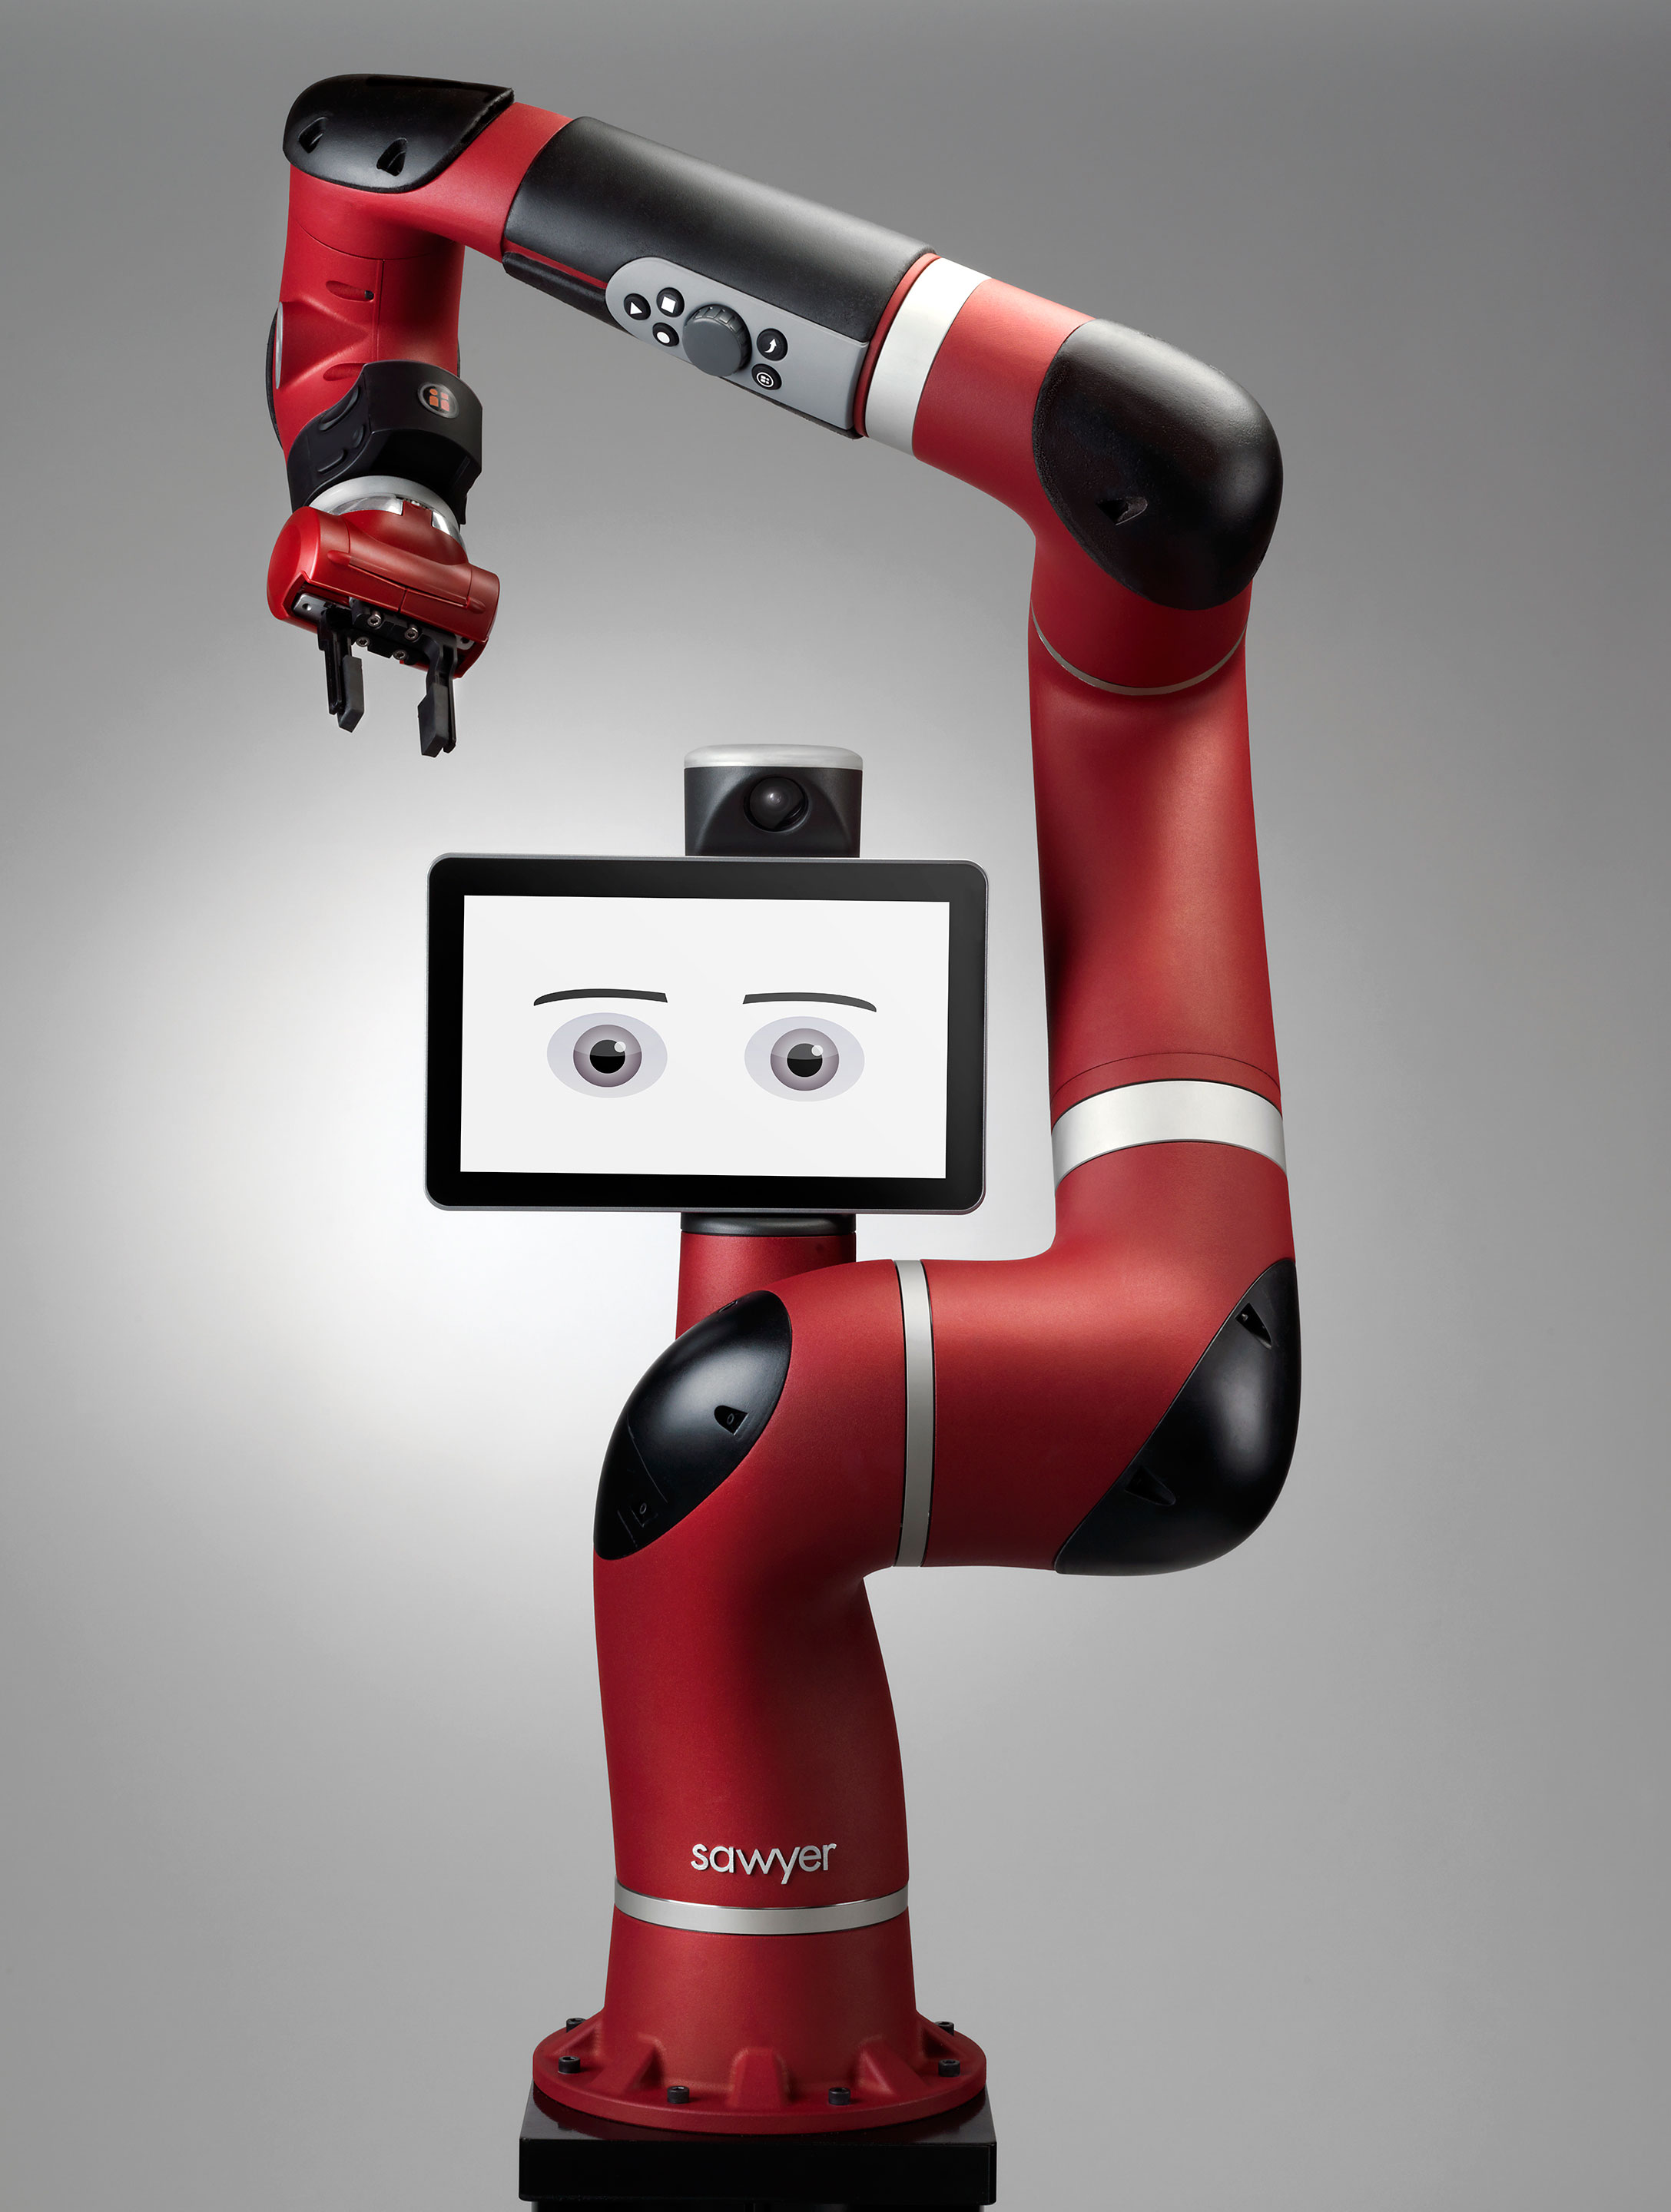 Collaborative robot Sawyer